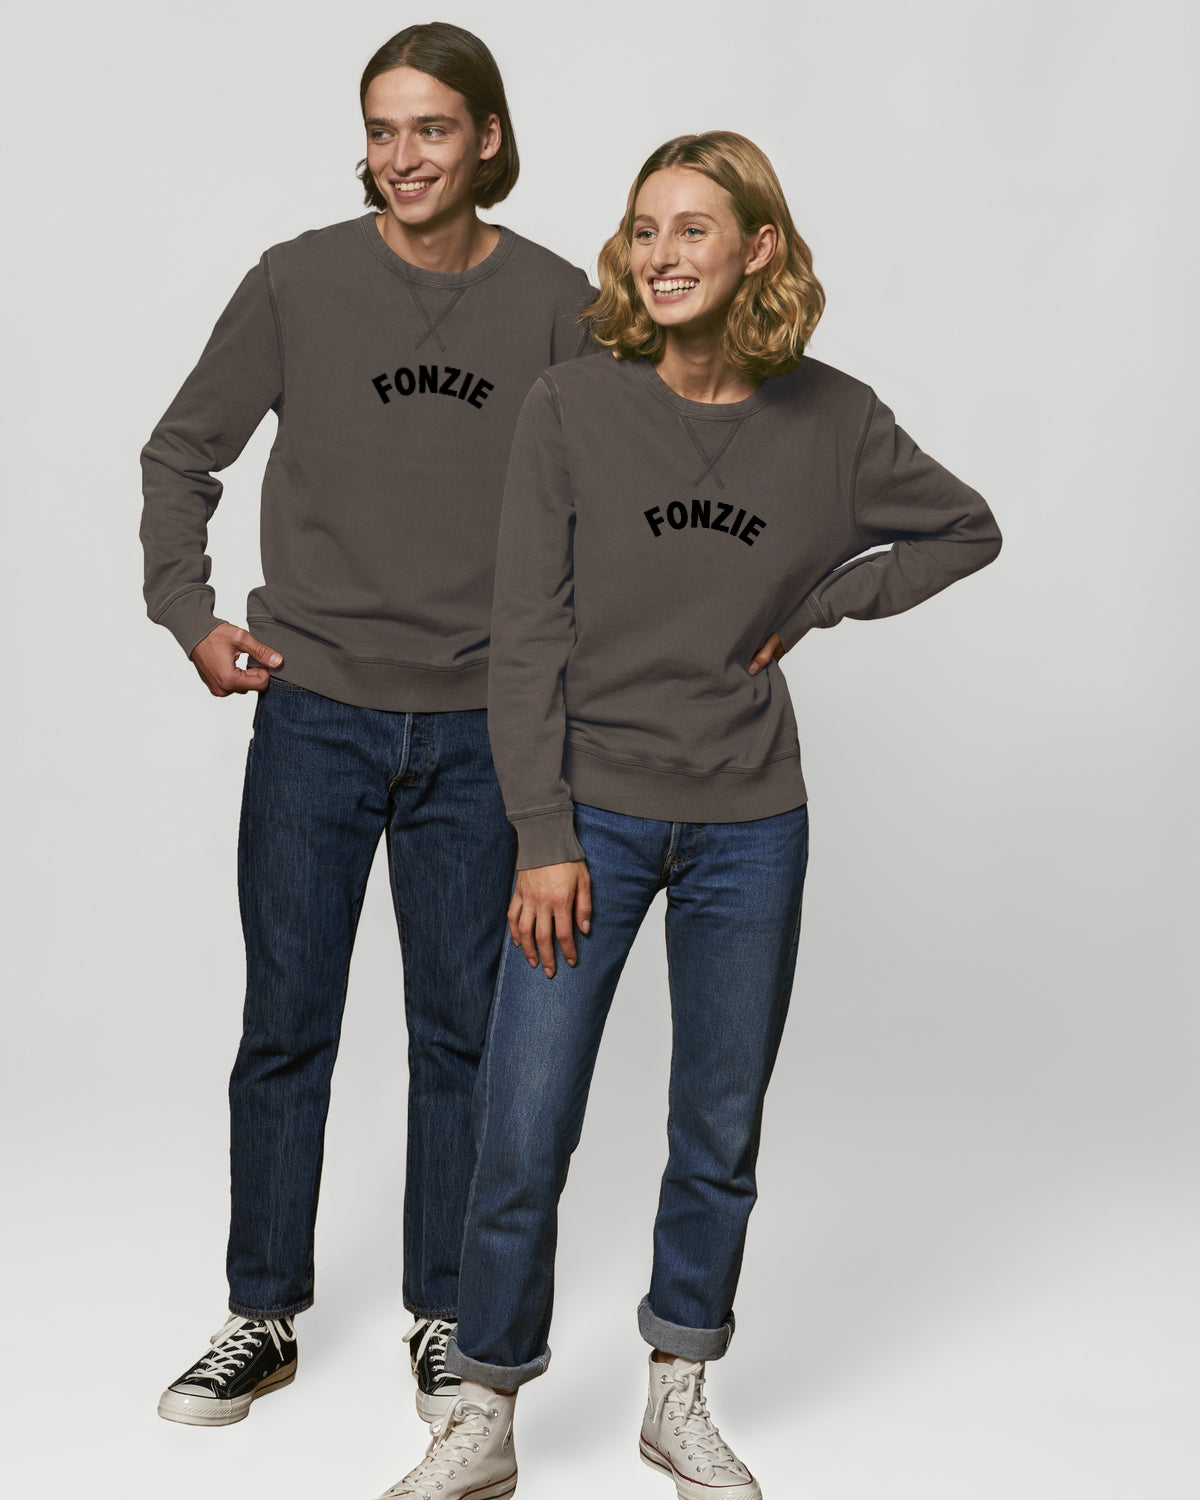 'FONZIE' EMBROIDERED UNISEX VINTAGE GARMENT DYED CREW NECK SWEATSHIRT